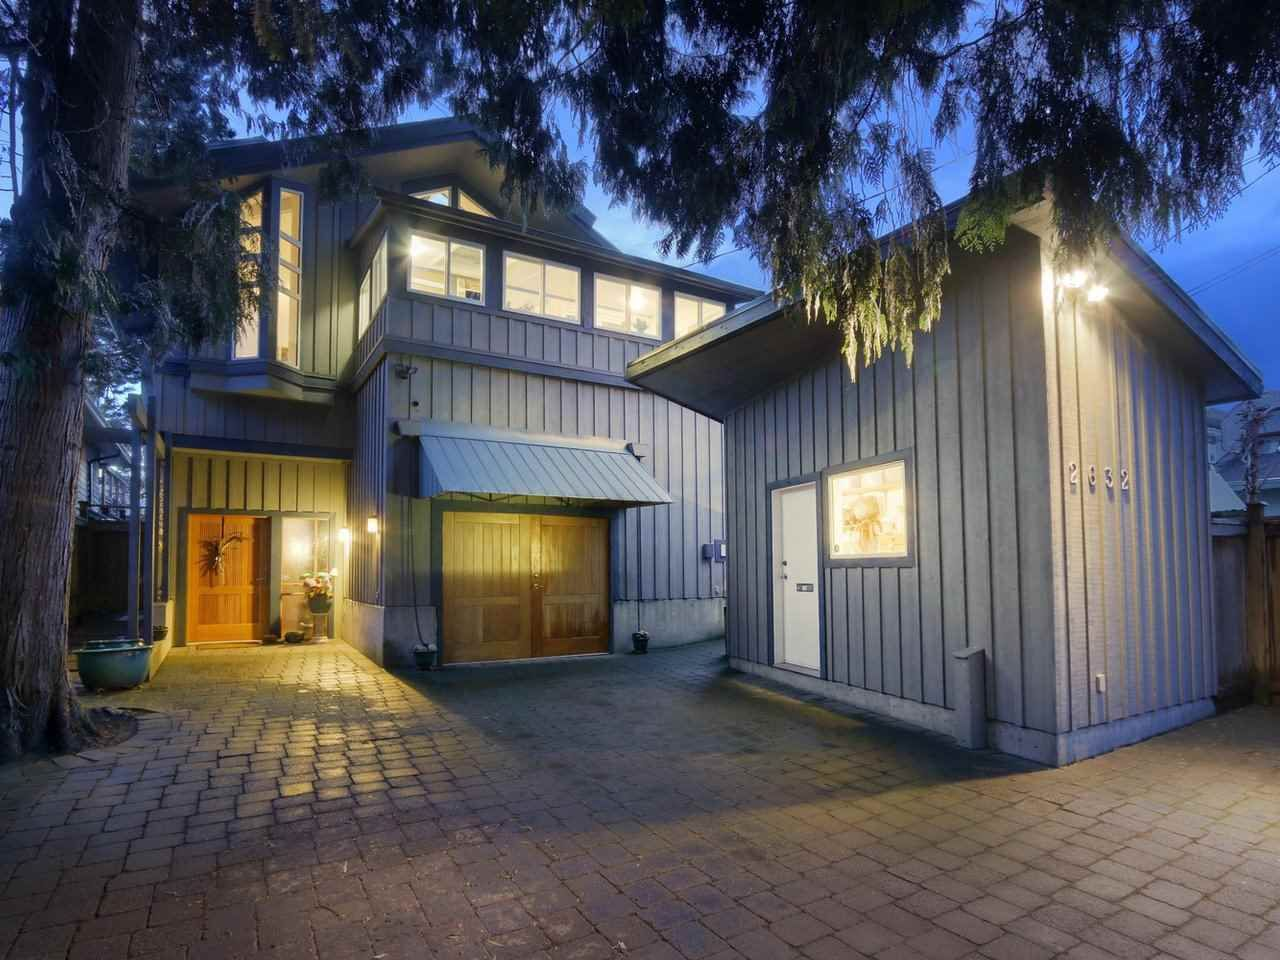 Main Photo: 2632 O'HARA Lane in Surrey: Crescent Bch Ocean Pk. House for sale (South Surrey White Rock)  : MLS®# R2361247